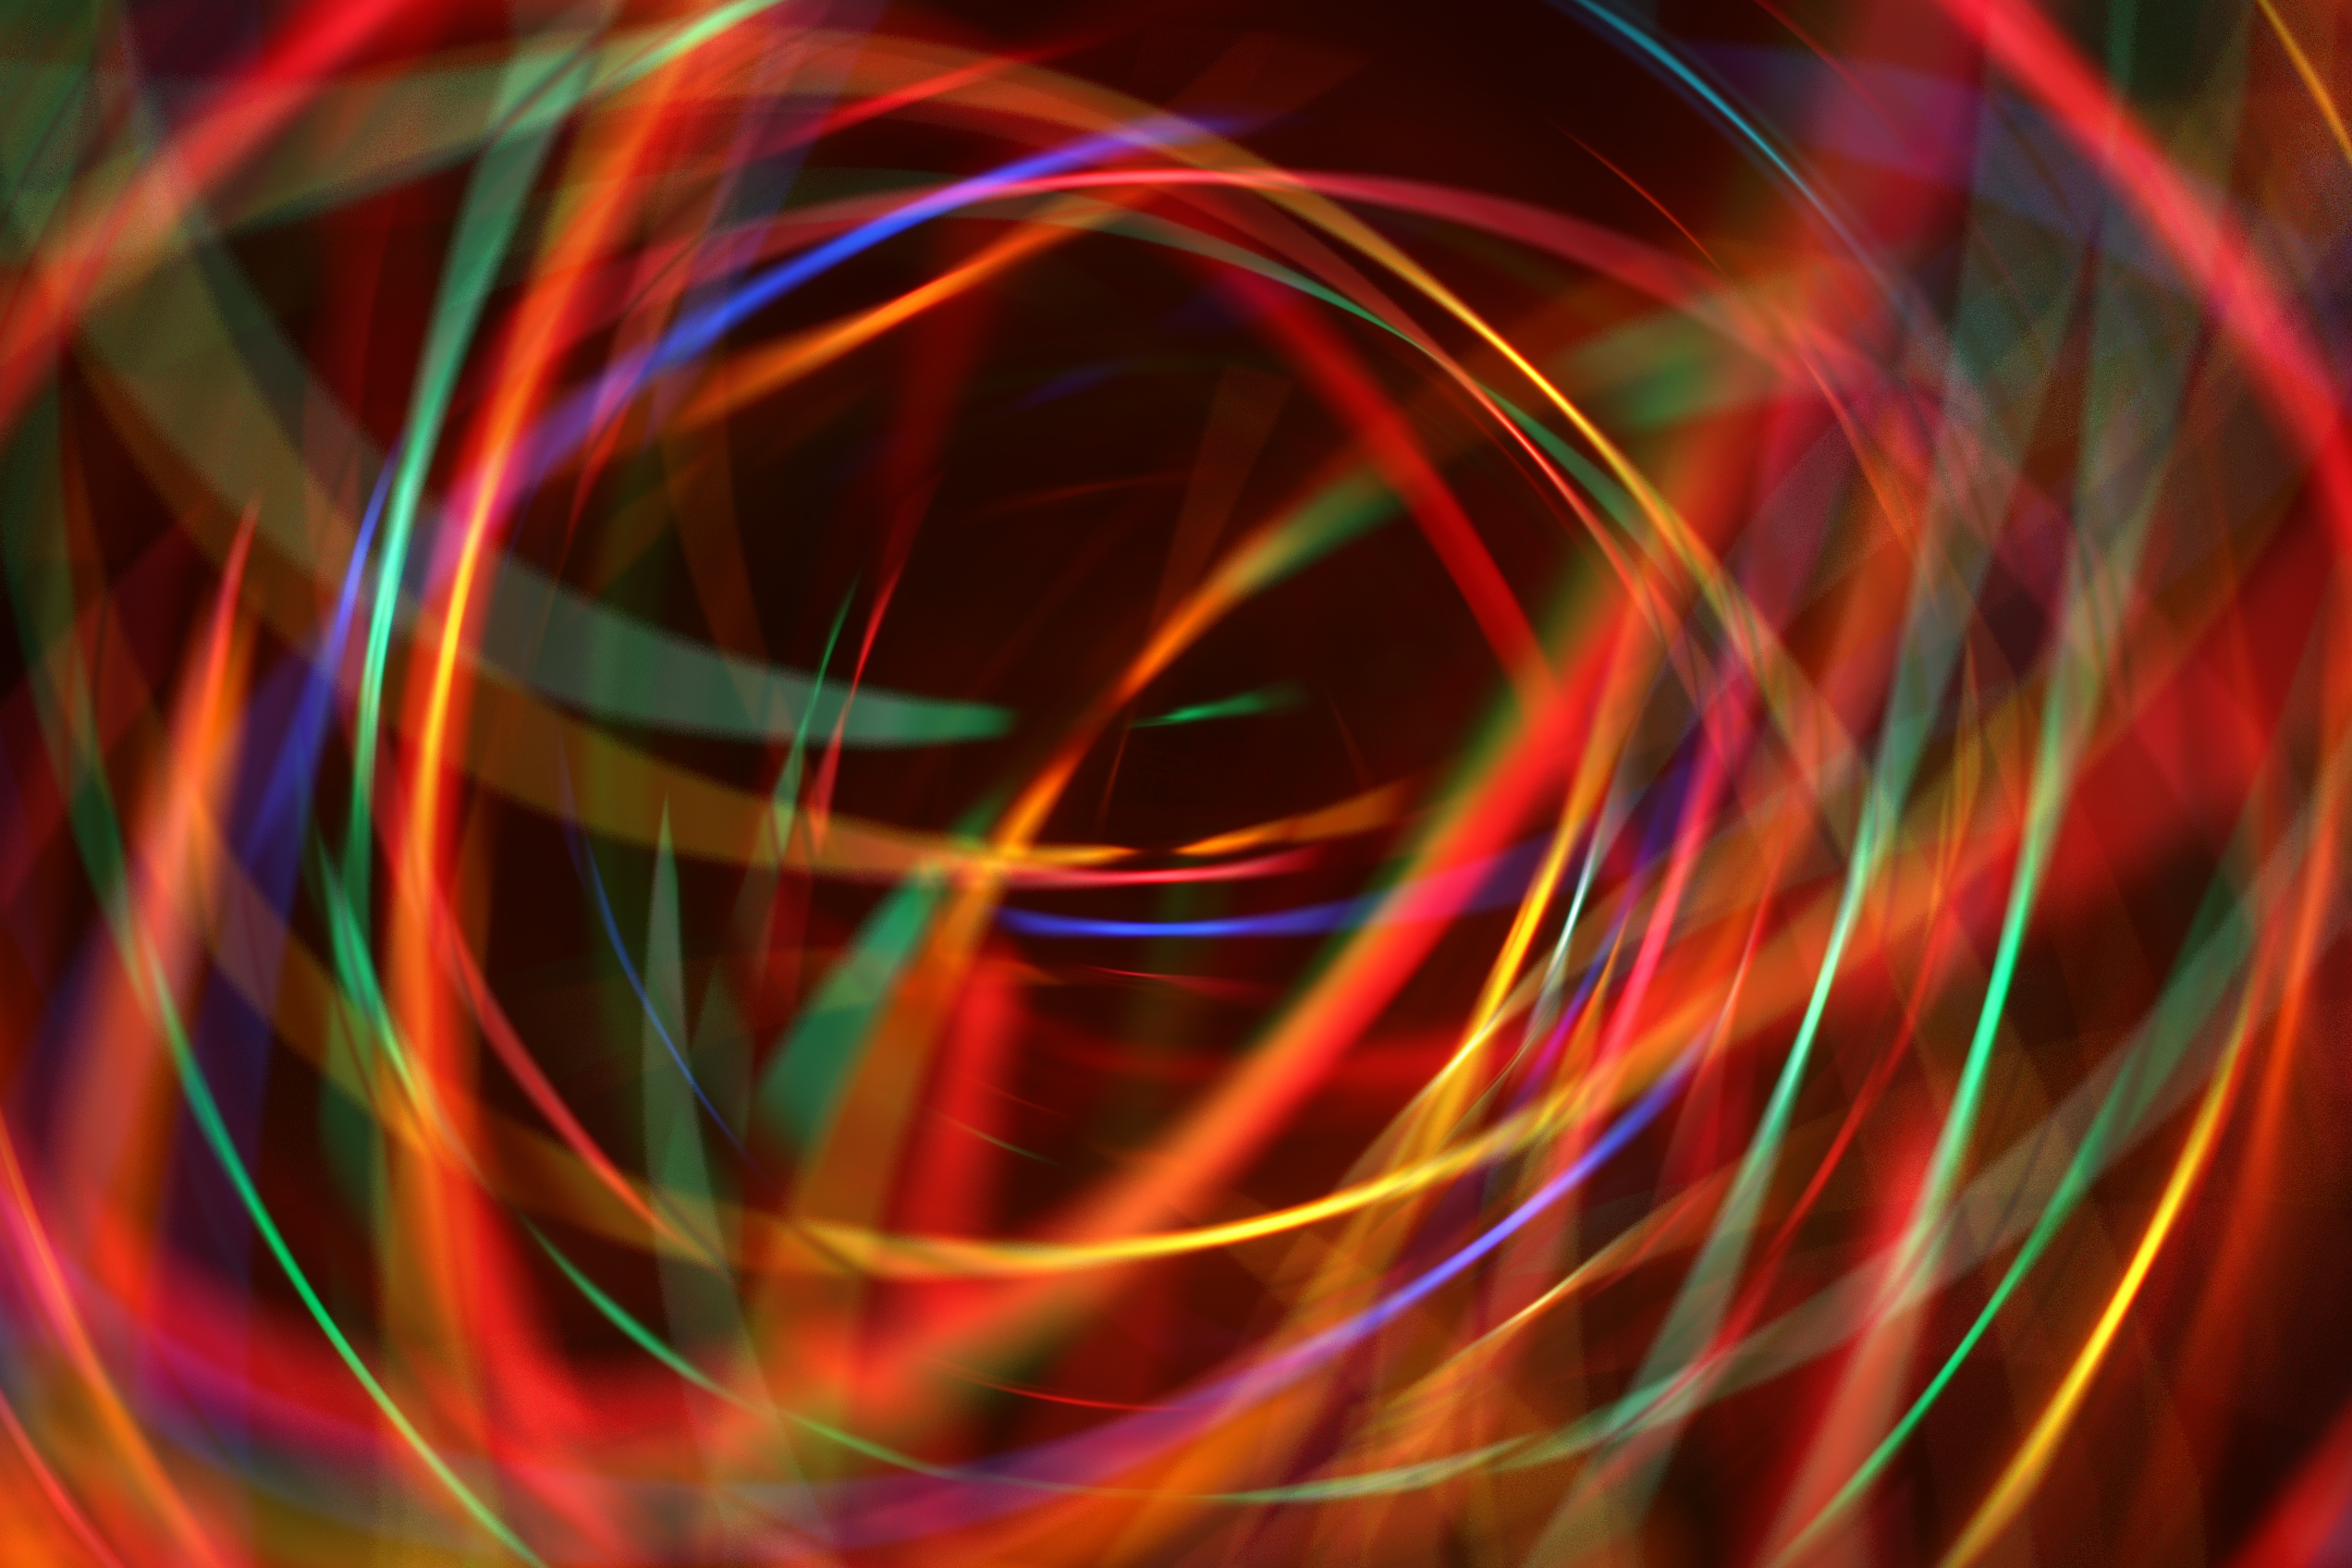 HQ Camera Toss Wallpapers | File 2713.69Kb